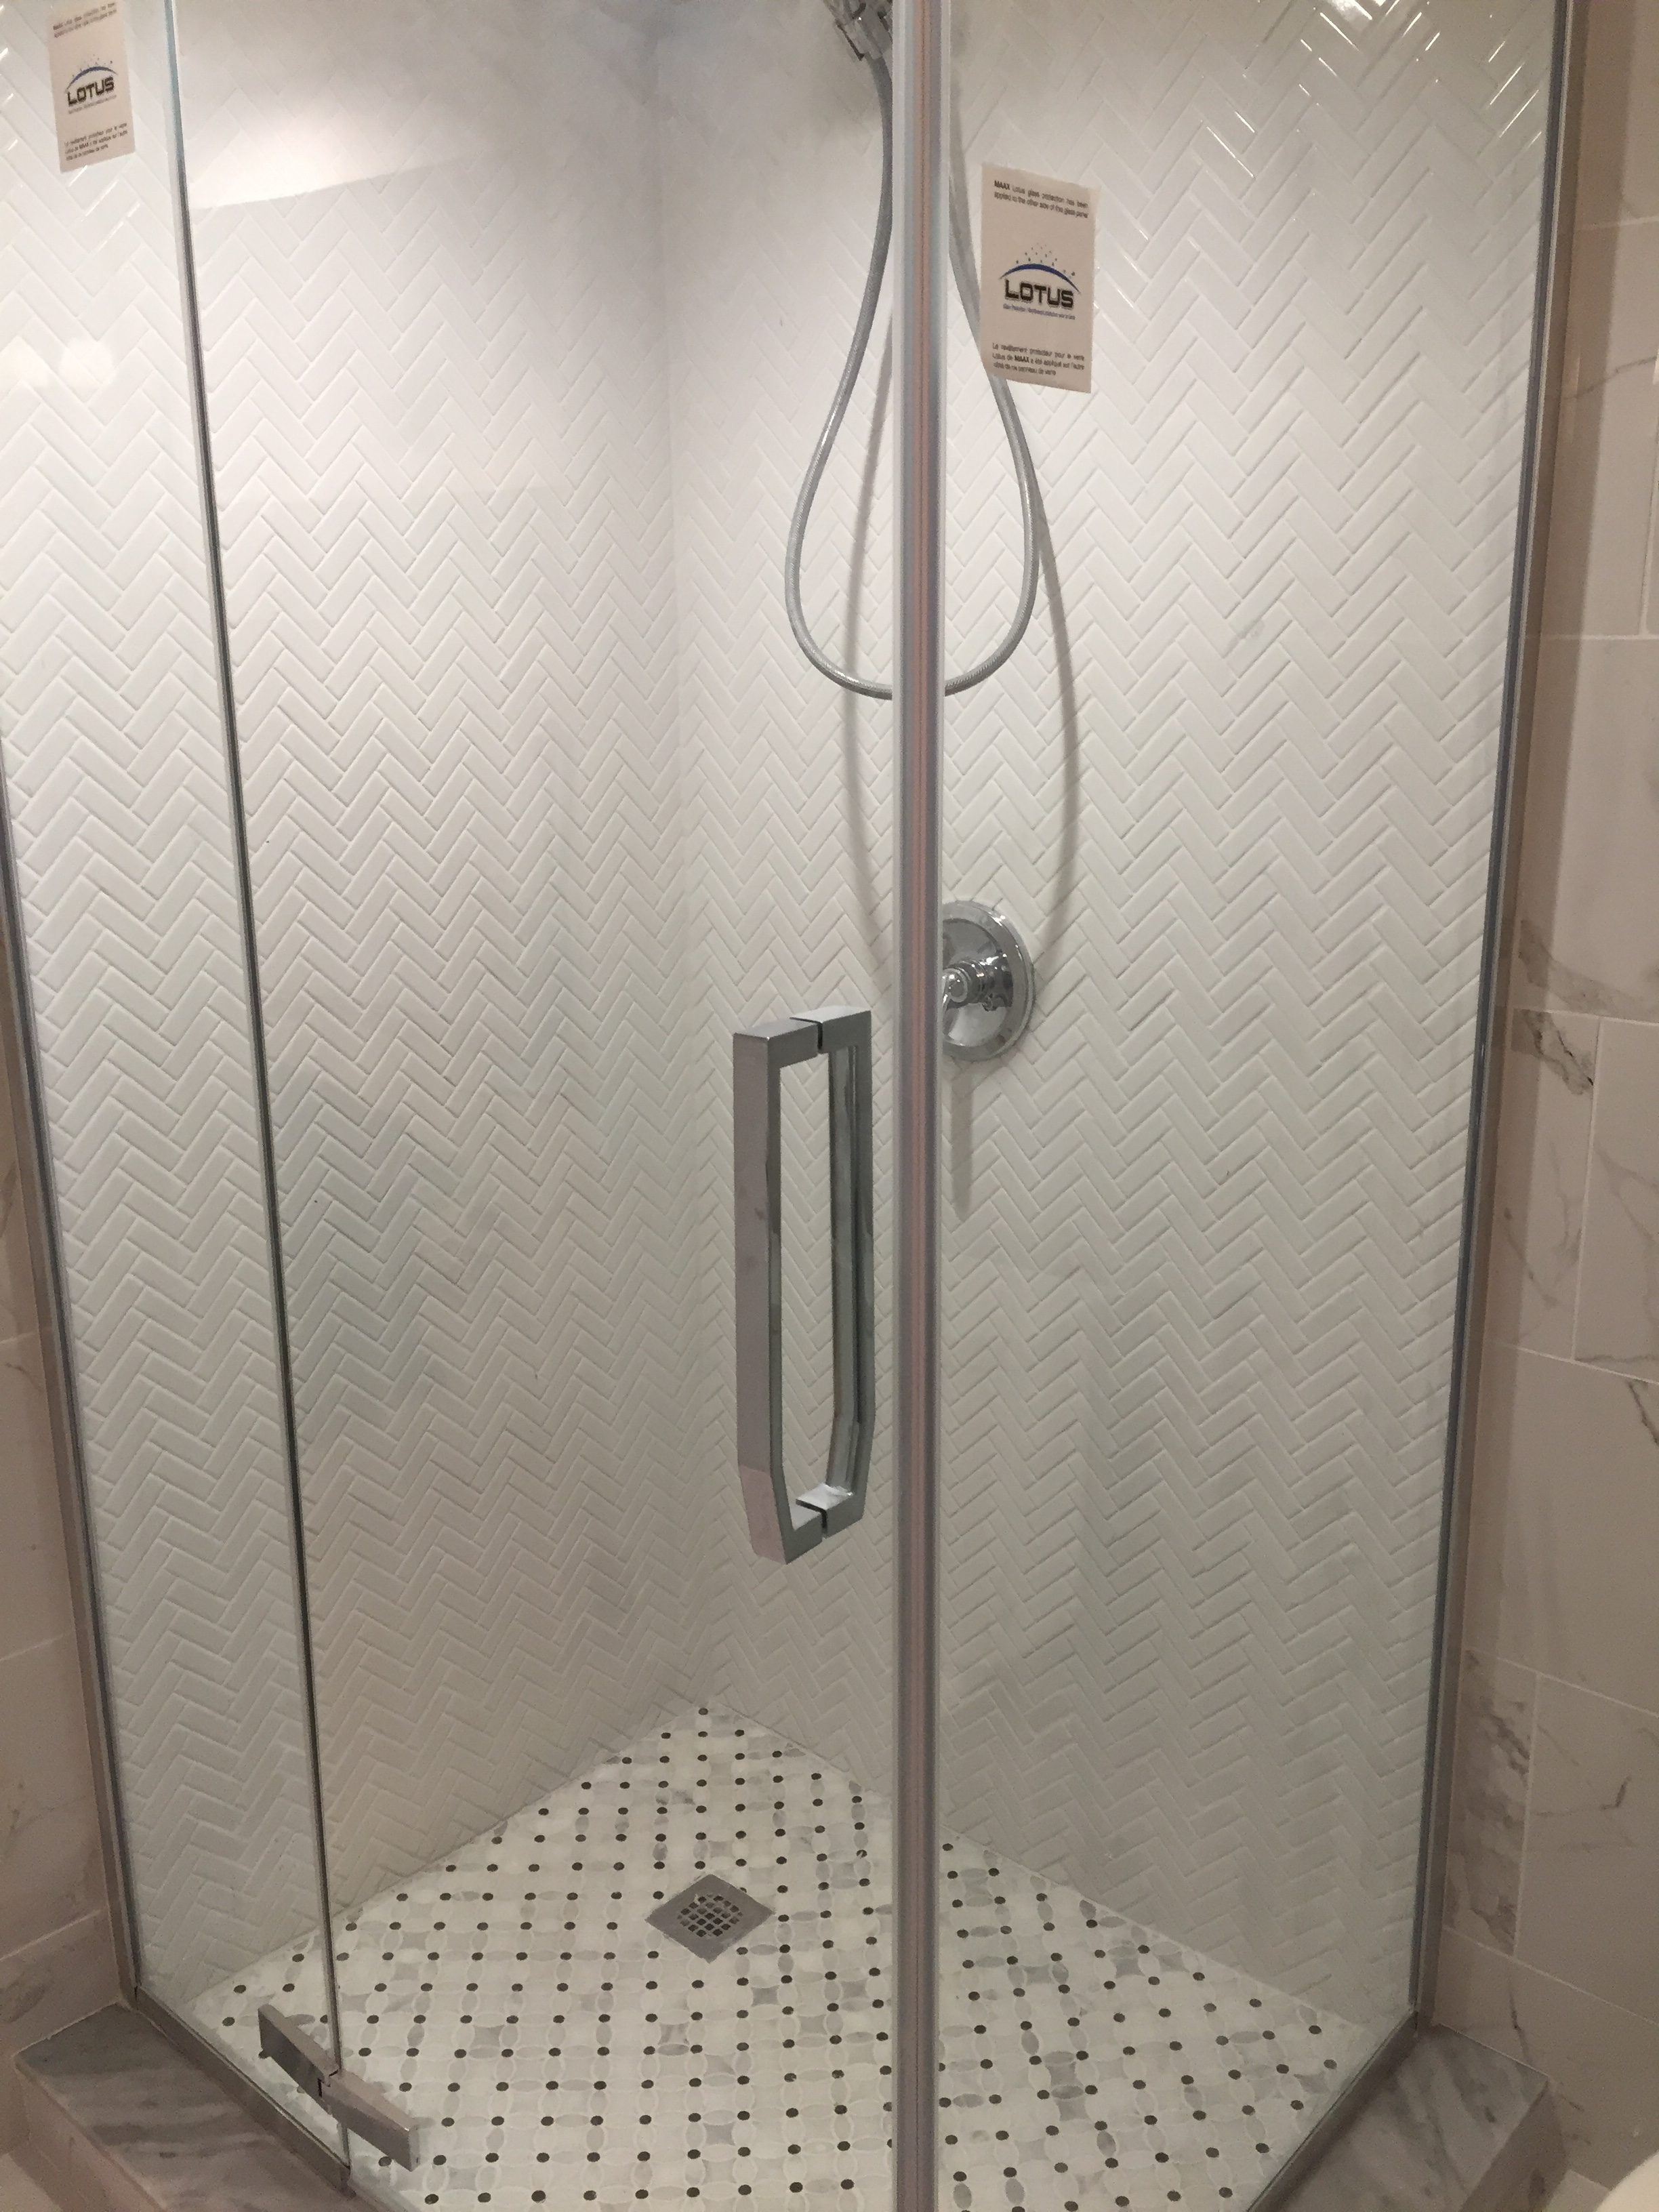 Bathroom tile installer